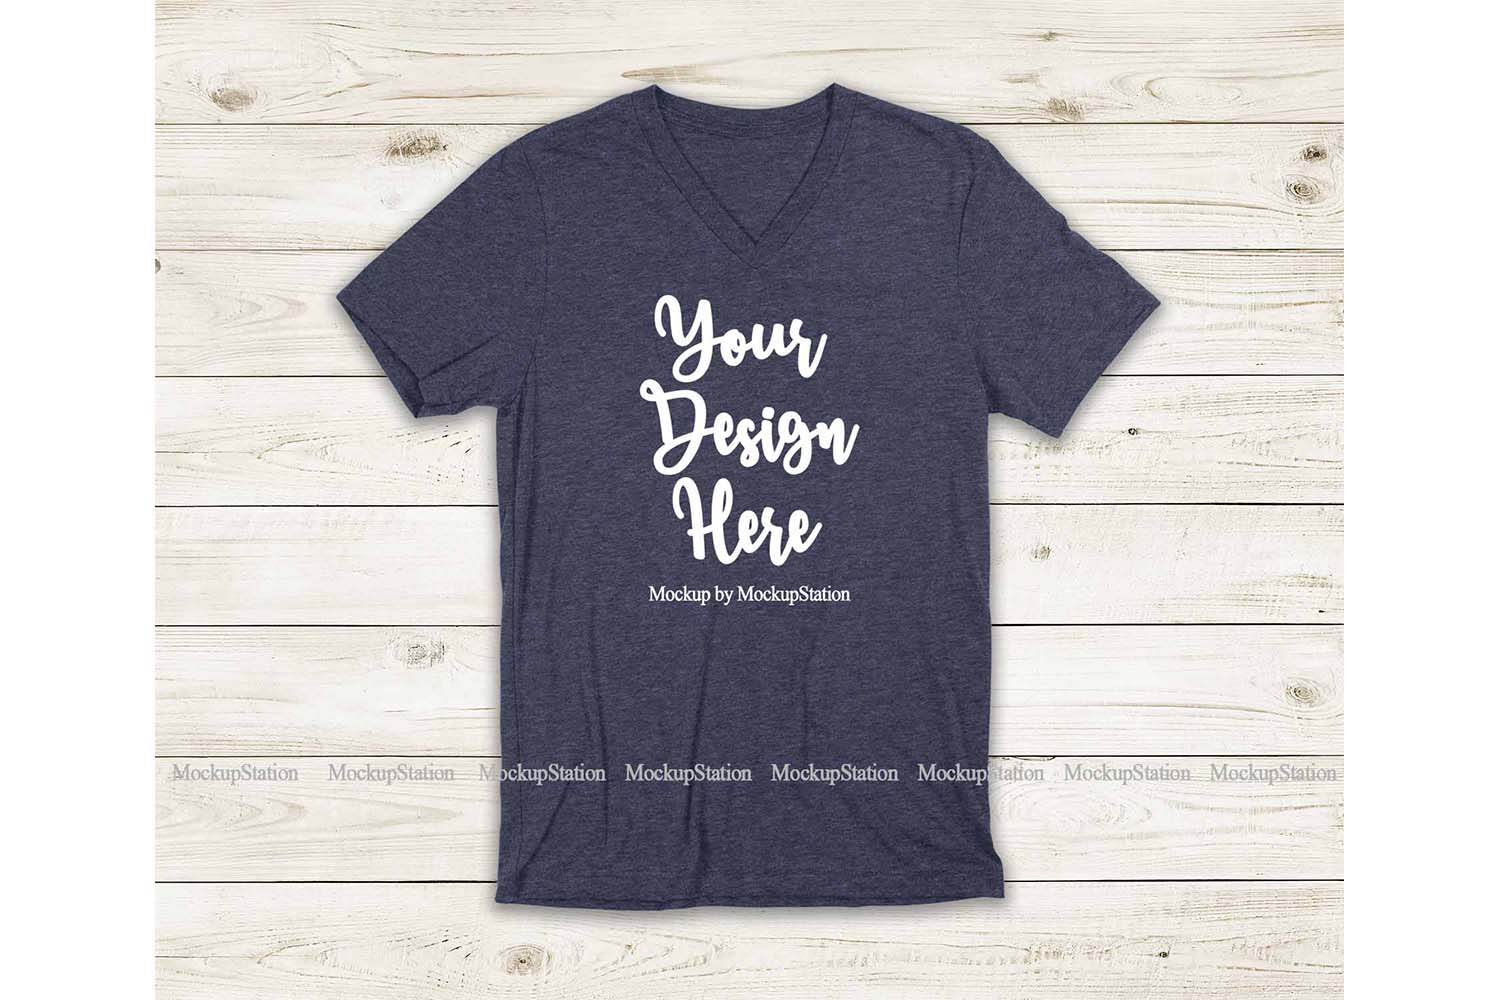 Navy Heather Shirt Mockup, Bella Canvas 3005 V-Neck Tee Mock example image 1